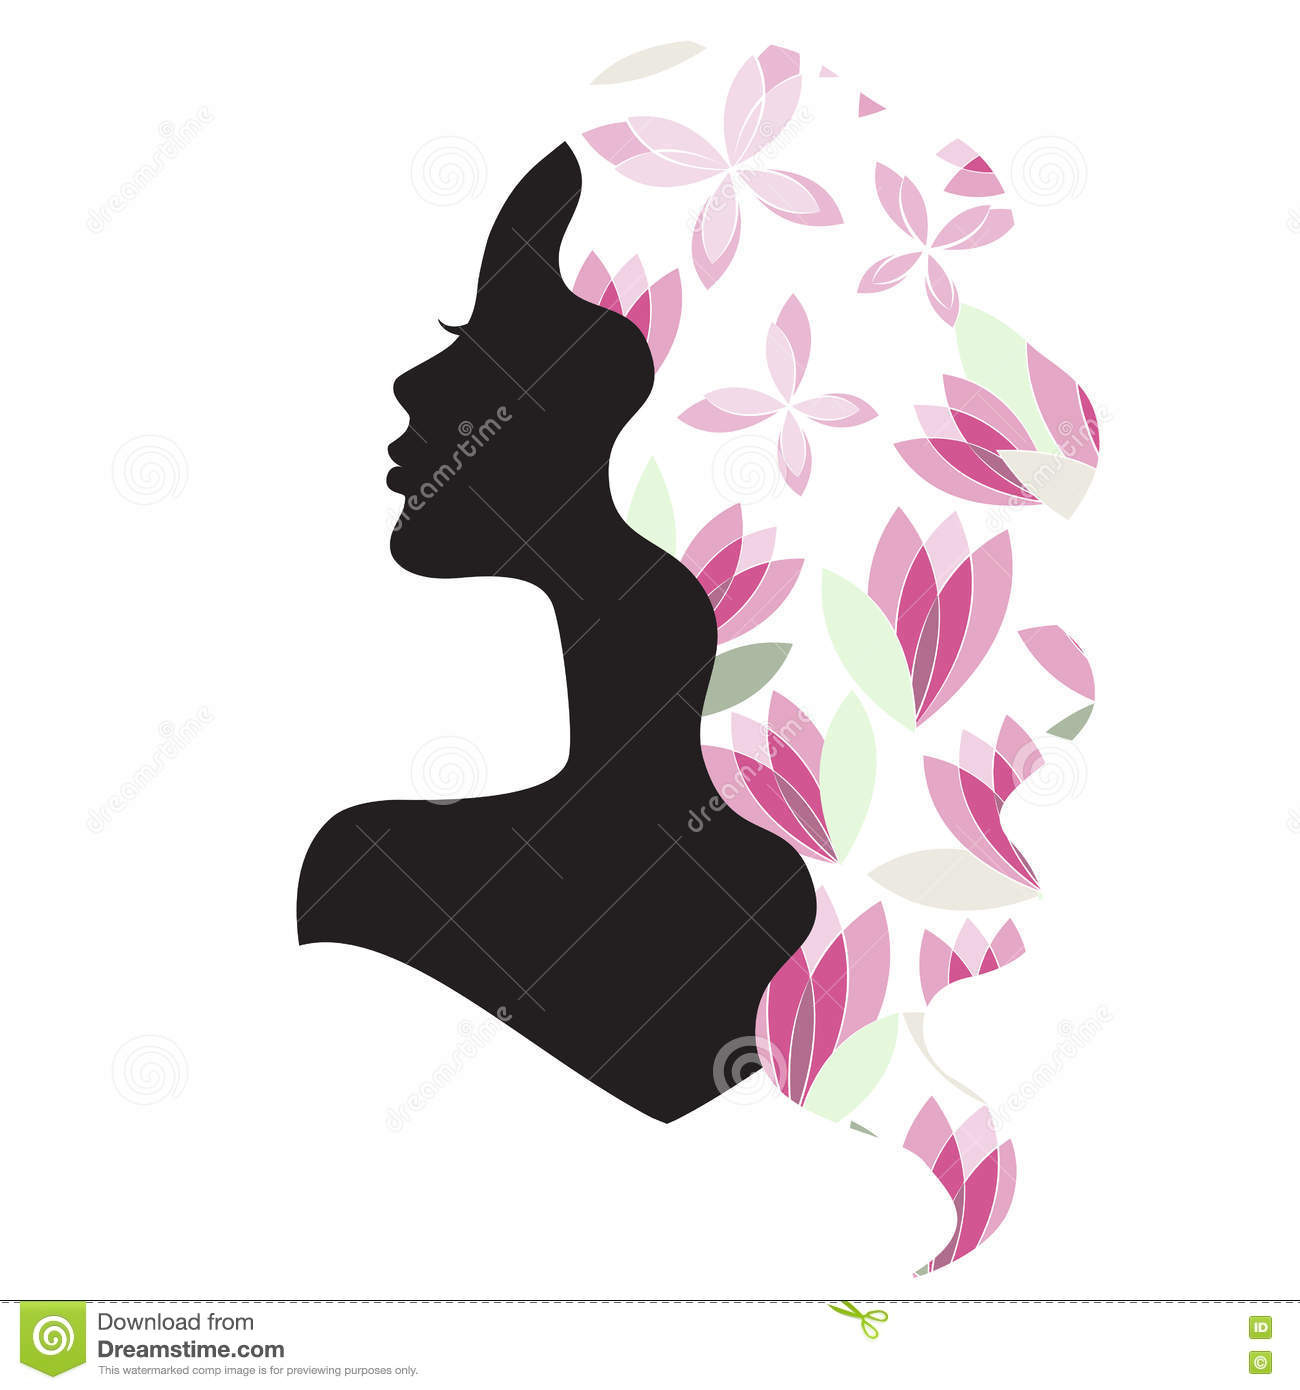 Girl silhouette with beautiful hair and flowers stock vector download girl silhouette with beautiful hair and flowers stock vector illustration of female illustration izmirmasajfo